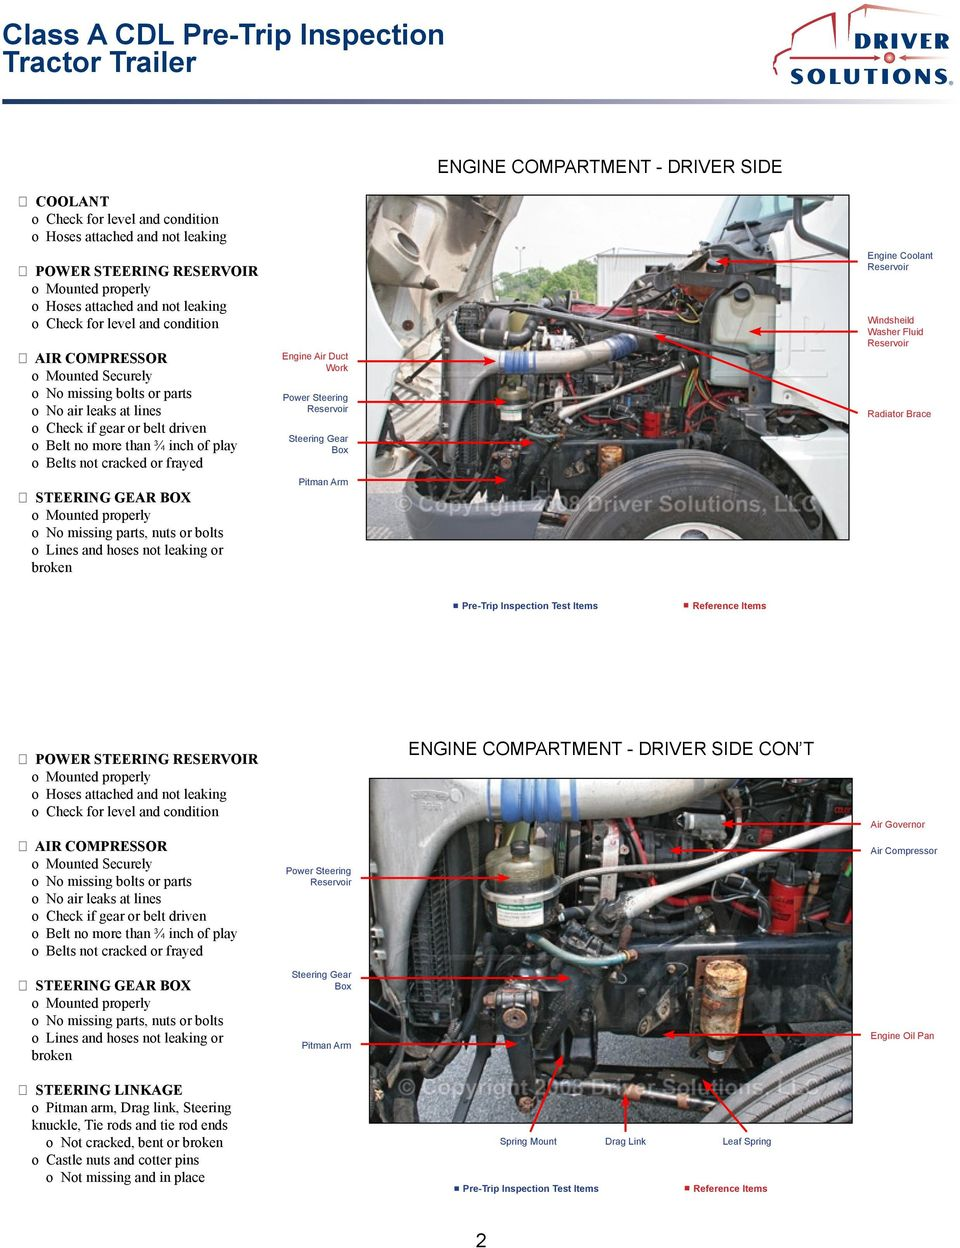 Class A Cdl Pre Trip Inspection Tractor Trailer Pdf